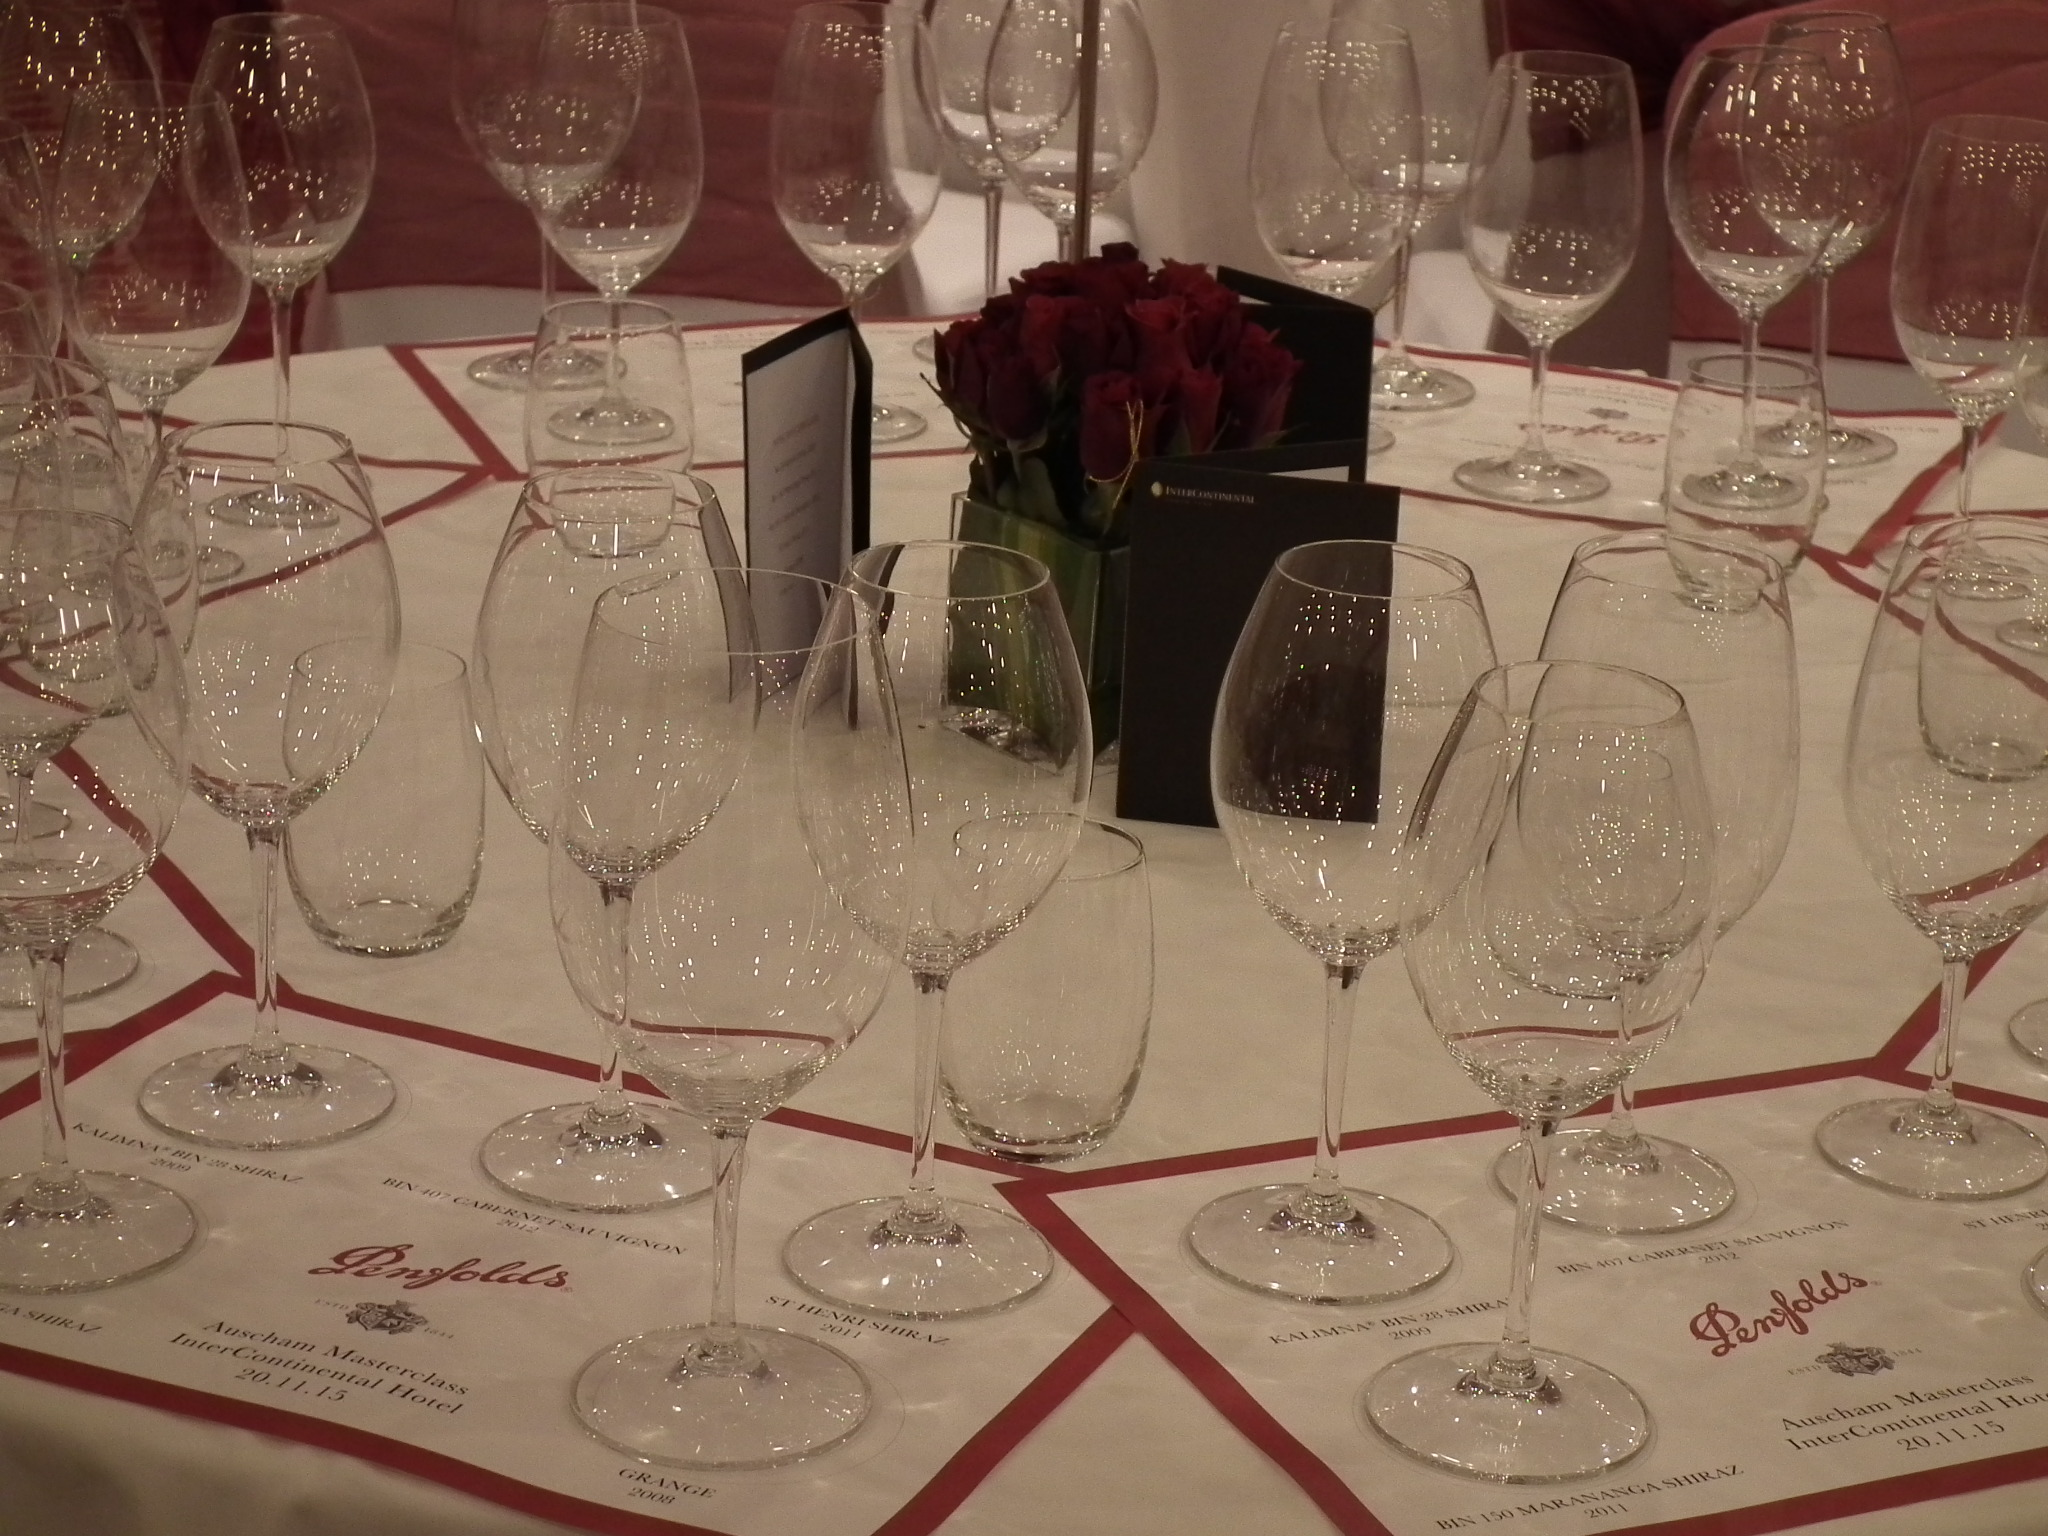 Penfolds Wine Celebration 2015